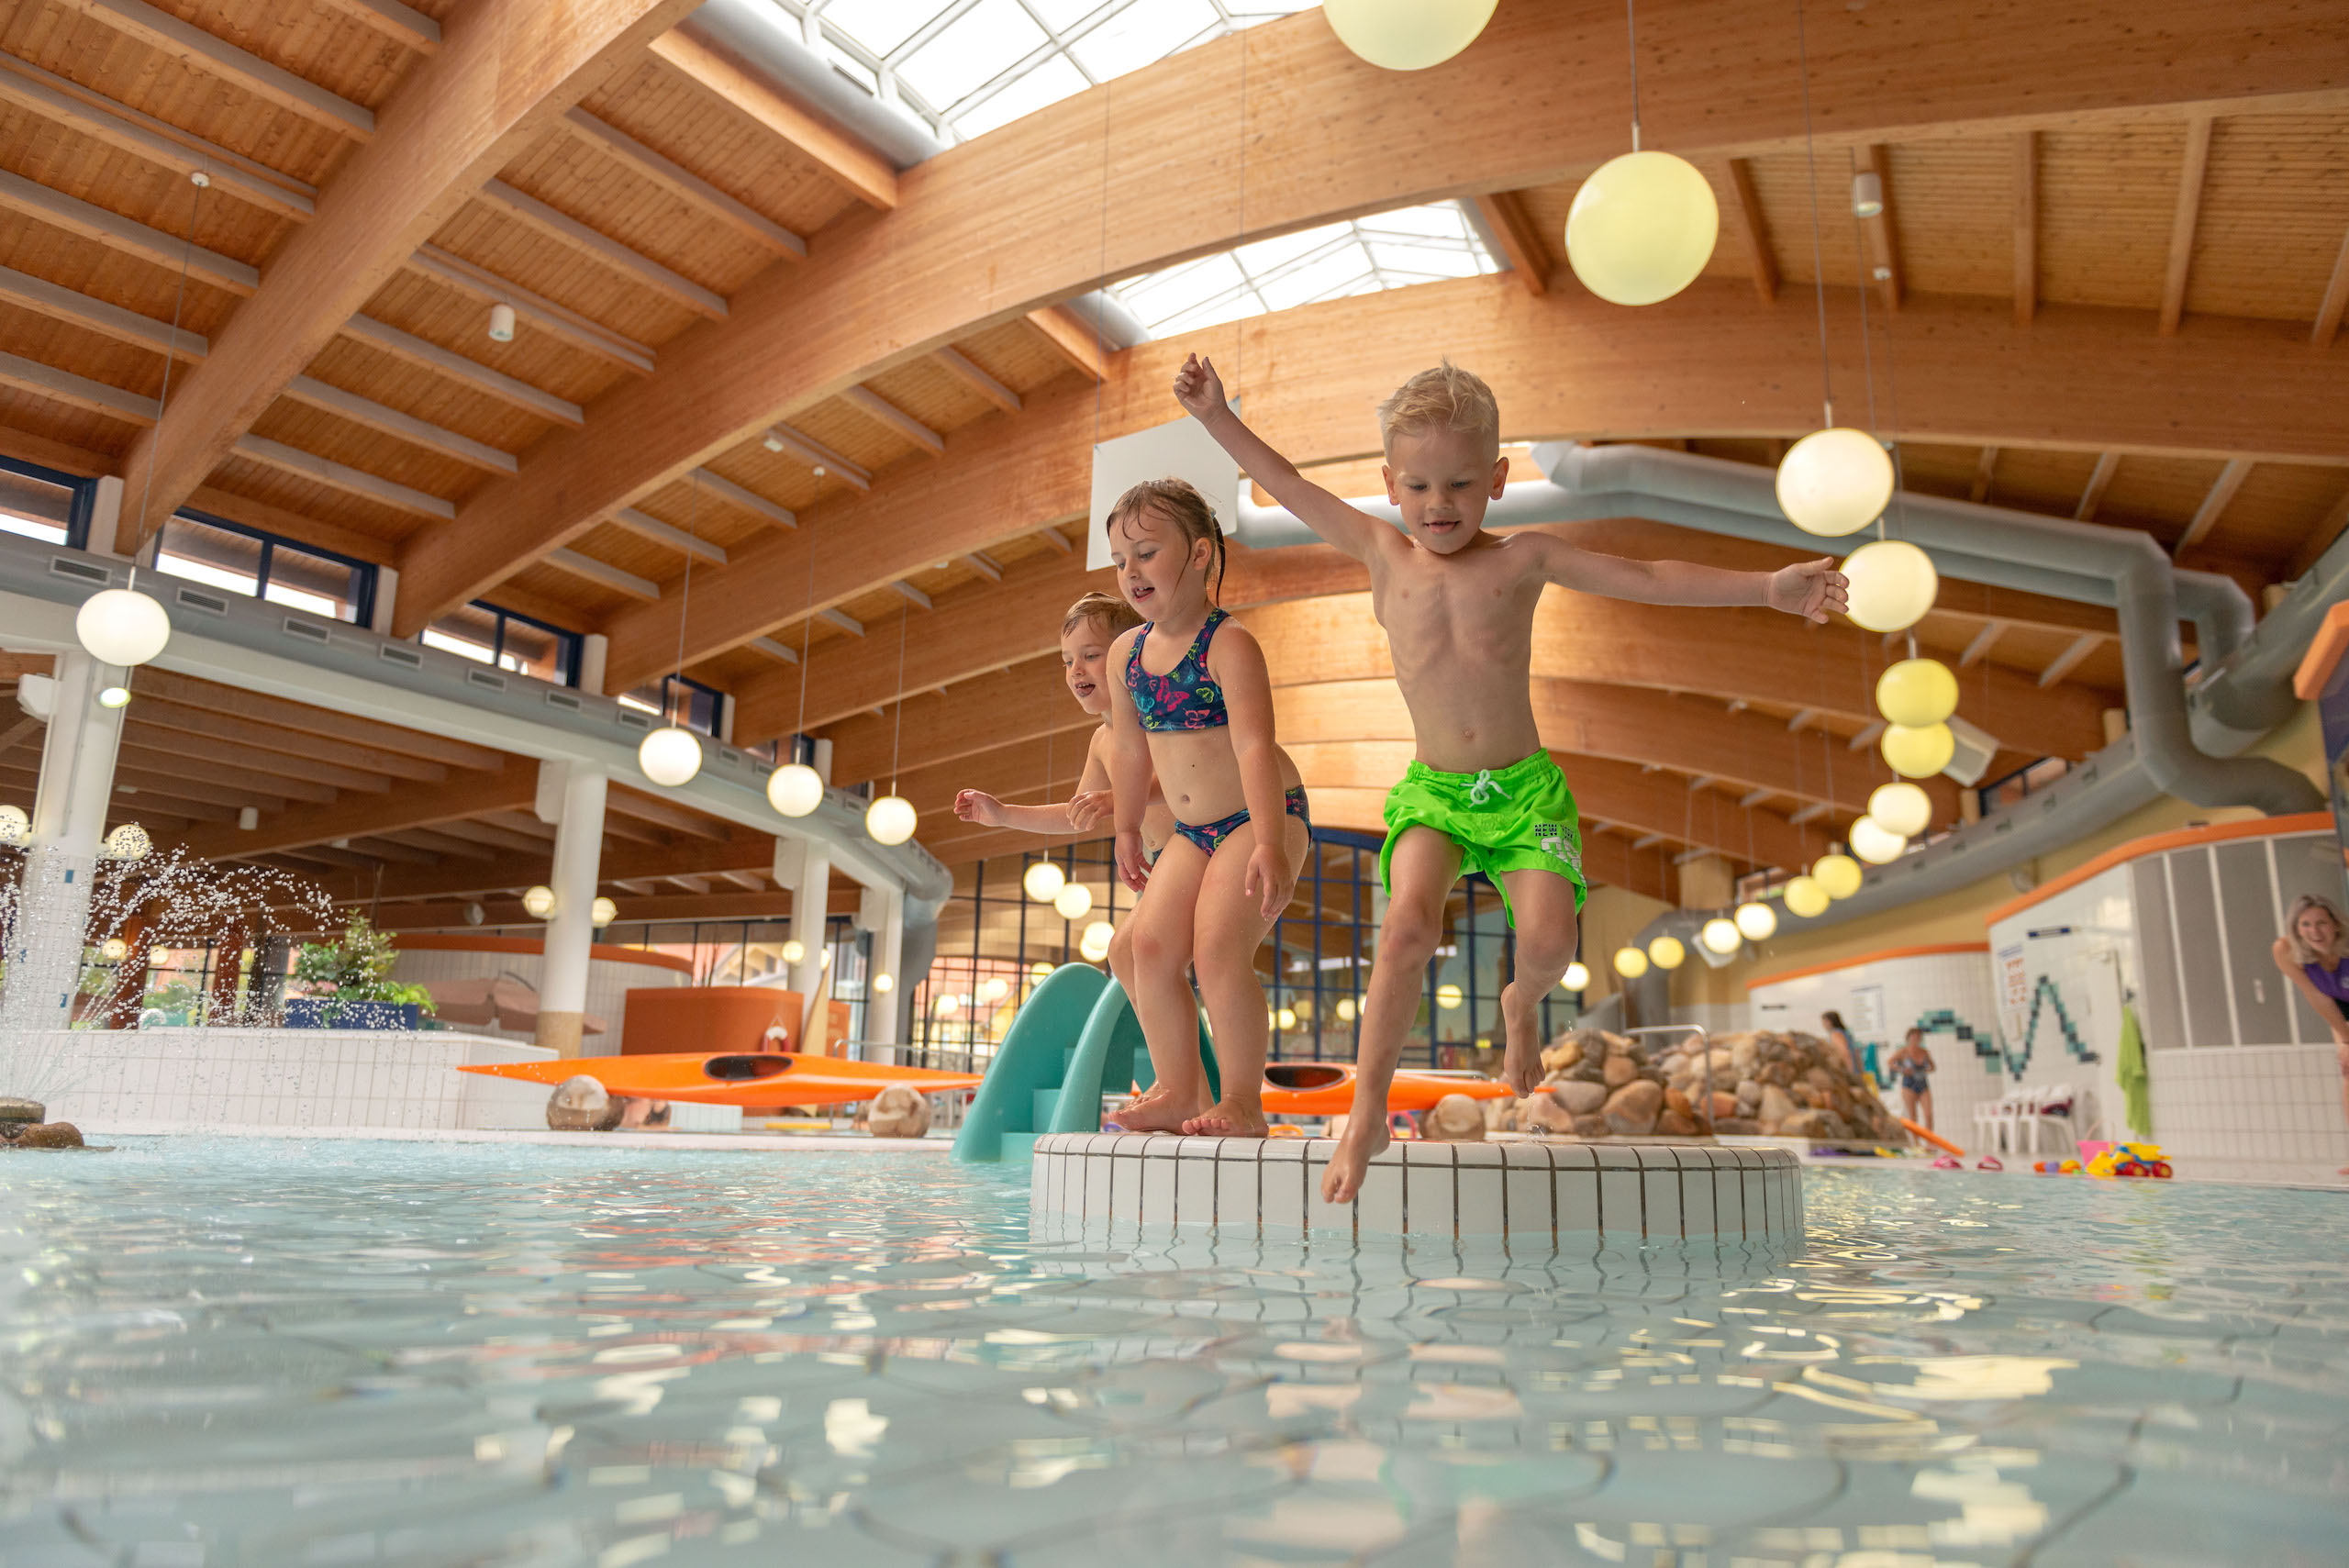 Kyffhäuser Therme Kinderbecken